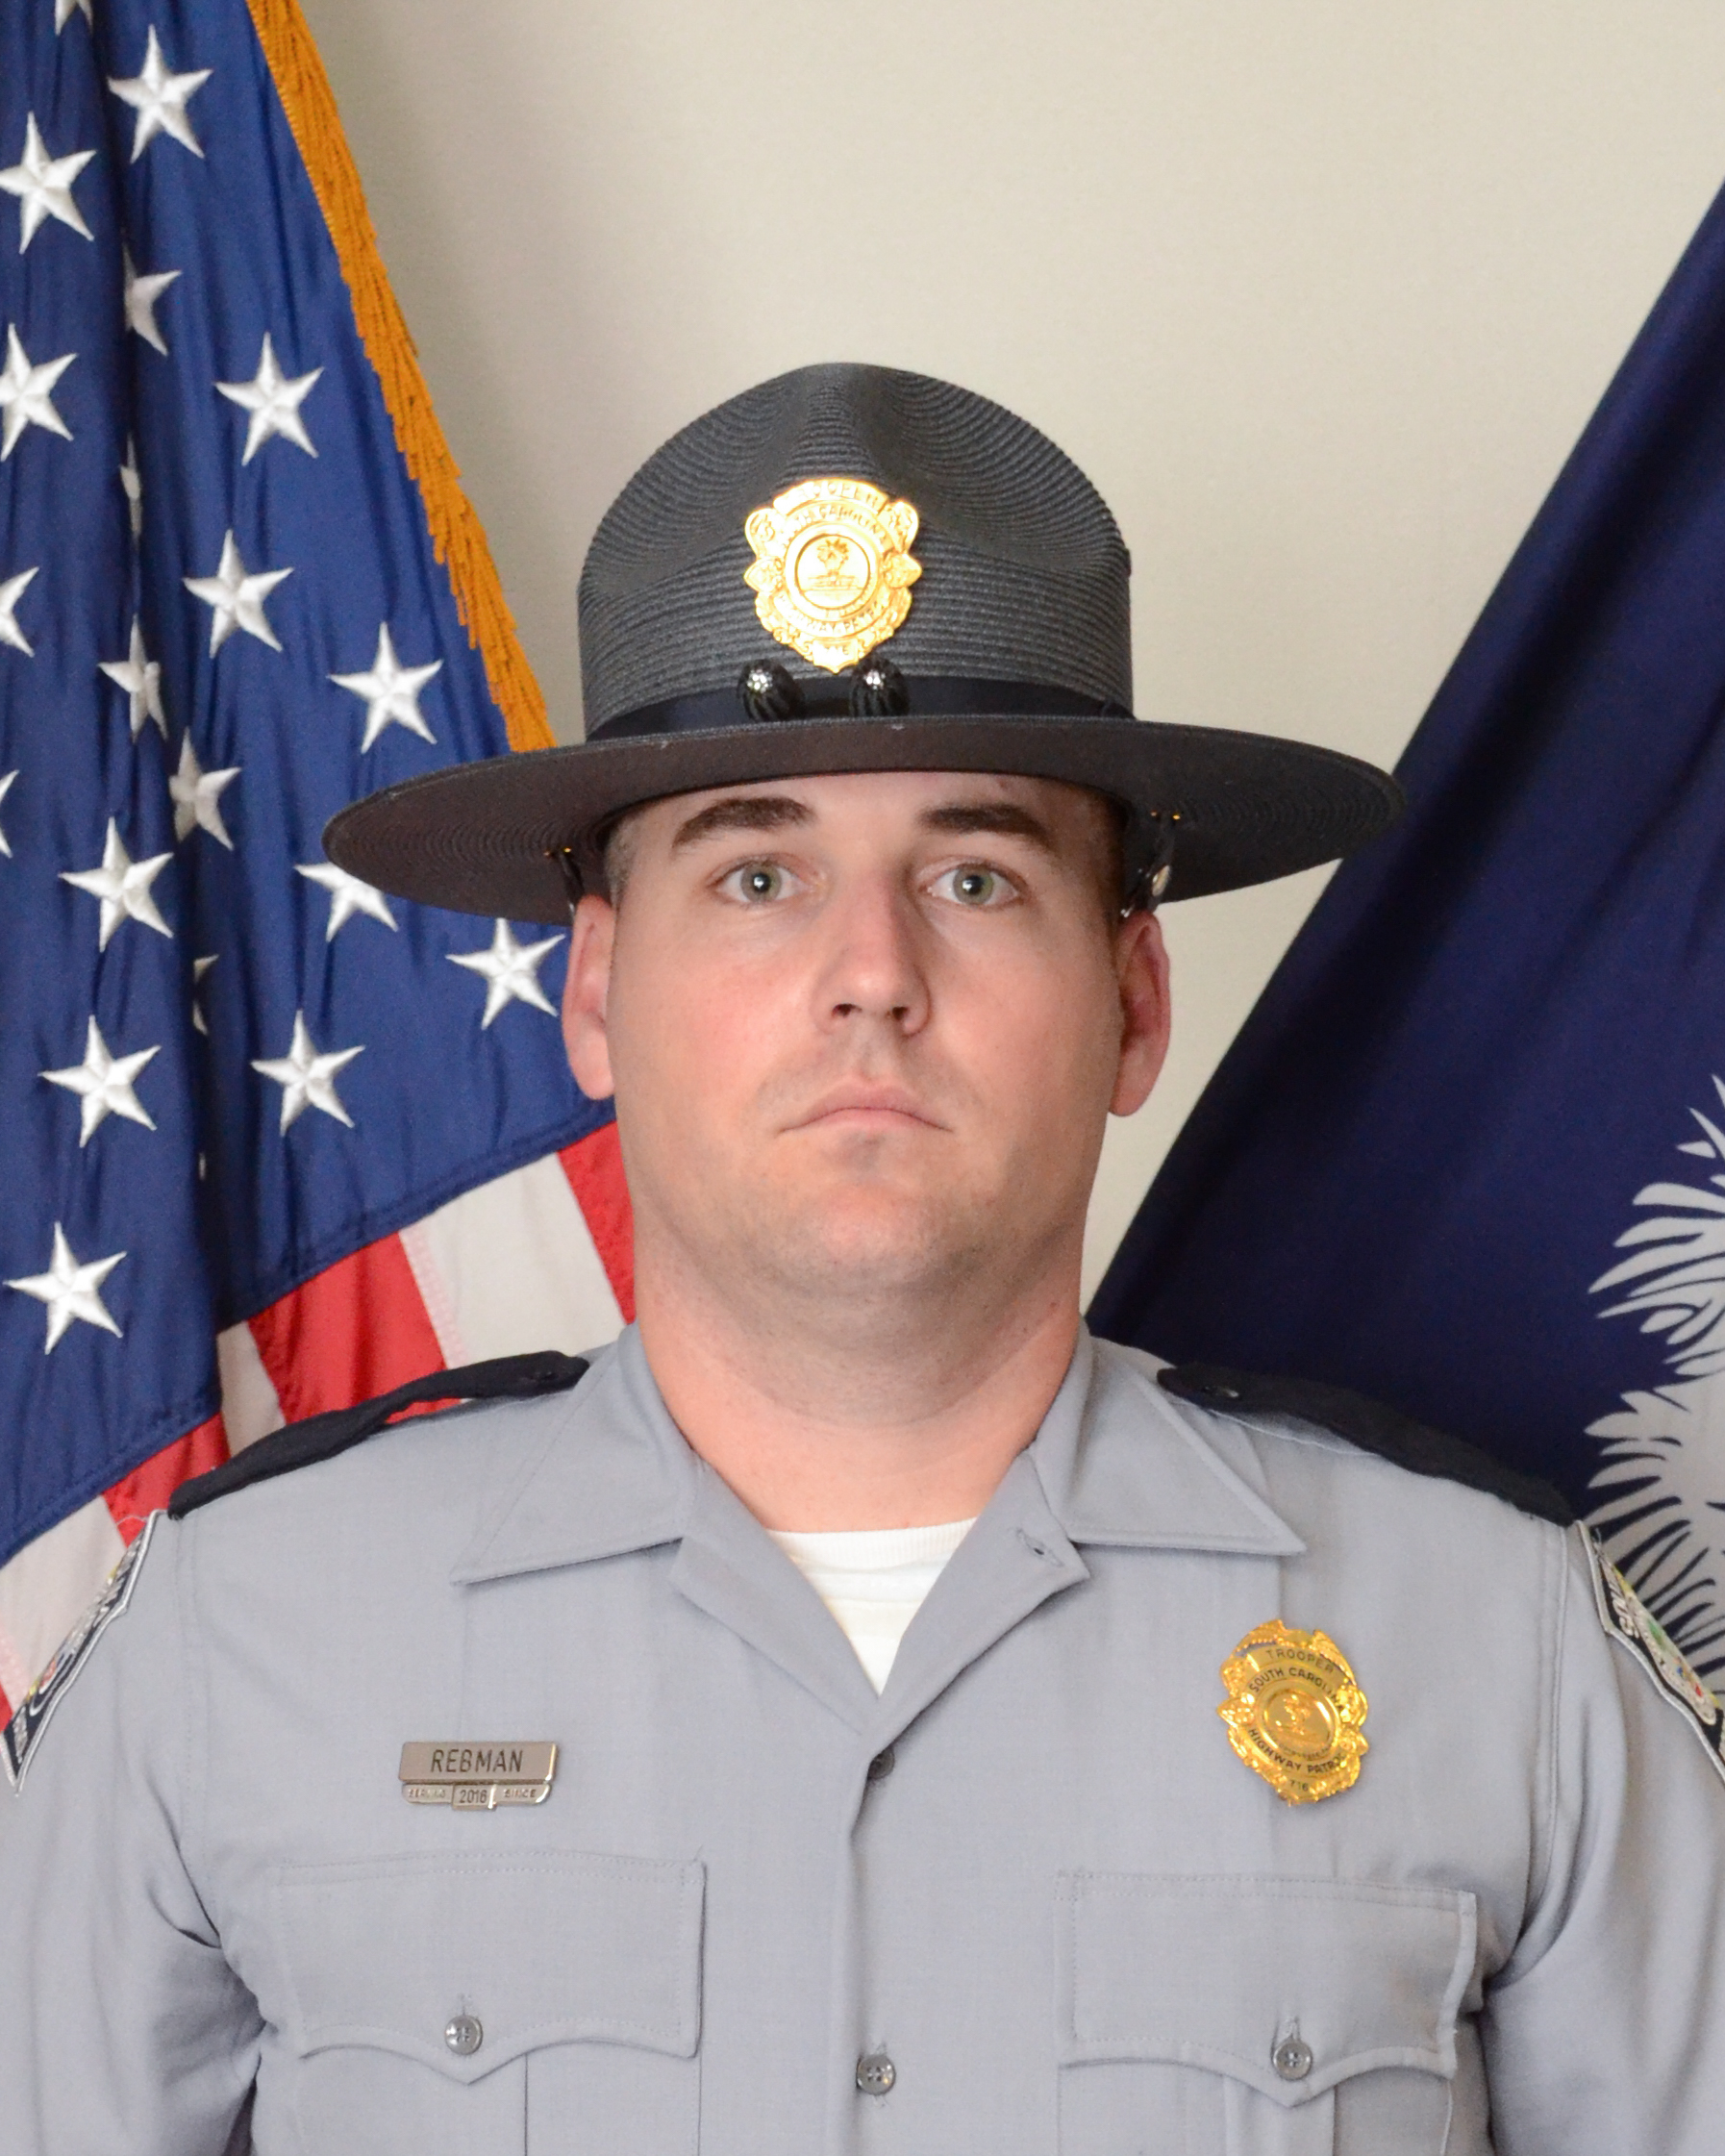 Funeral planned for Sunday for fallen SC Trooper